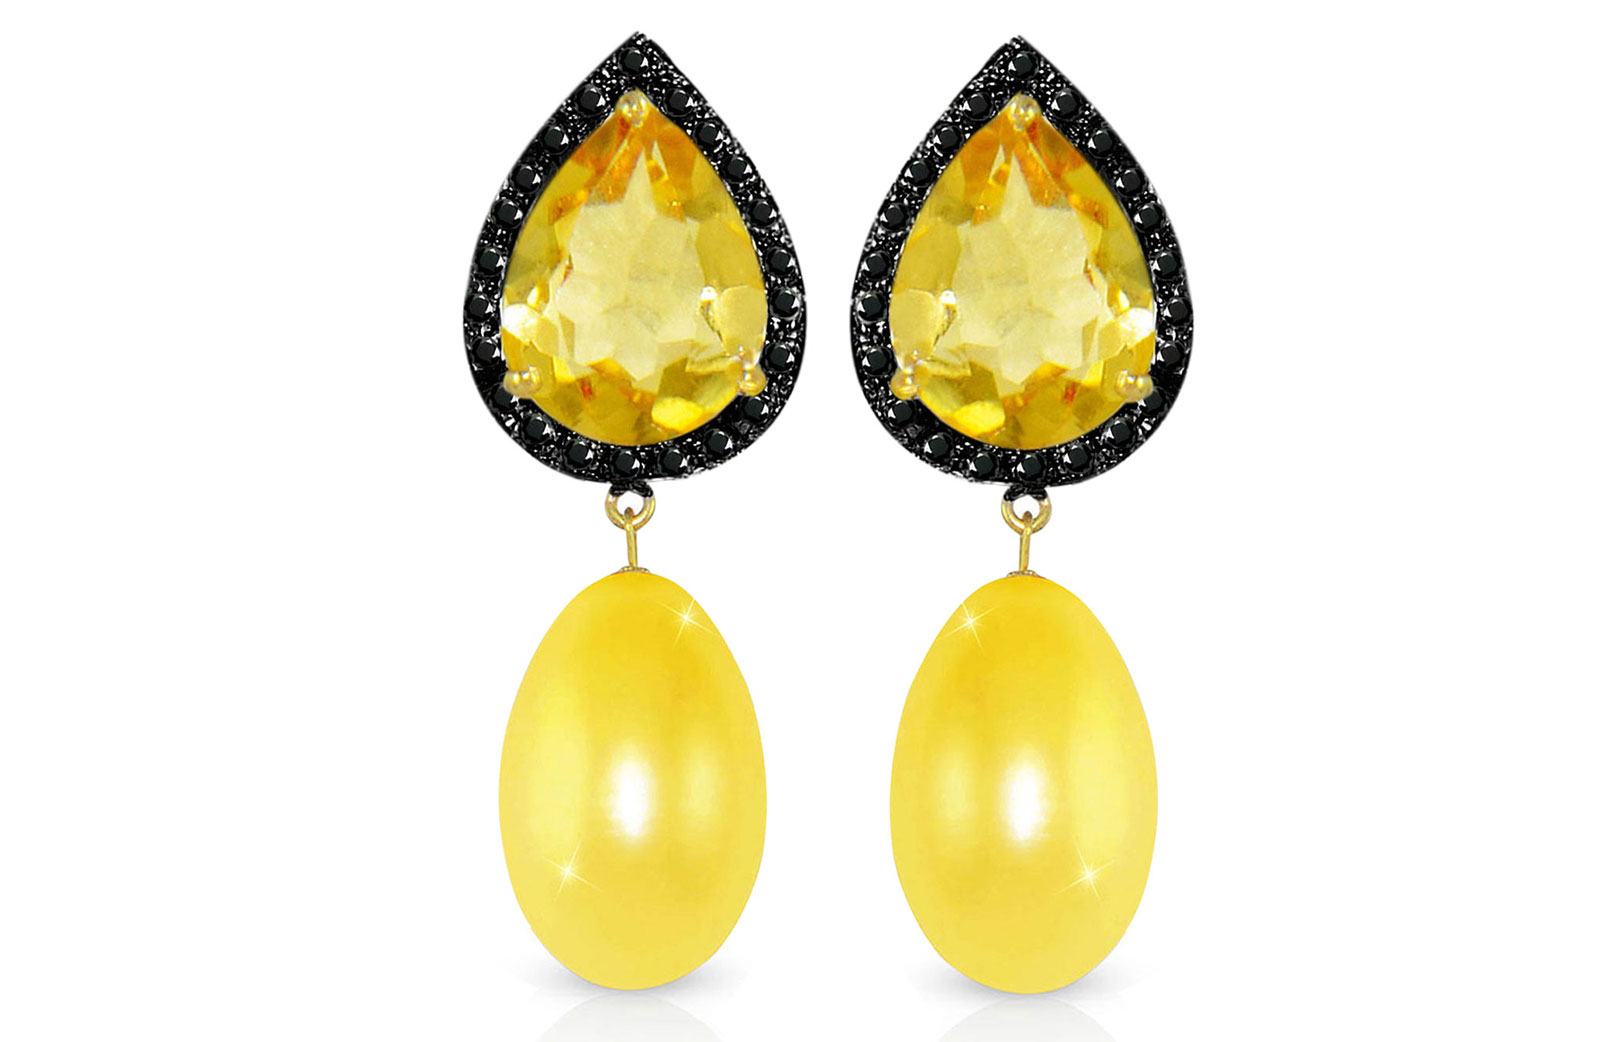 Vera Perla 18K Gold 0.24ct Black Diamonds, Citrine and 13mm Golden Pearl Earrings